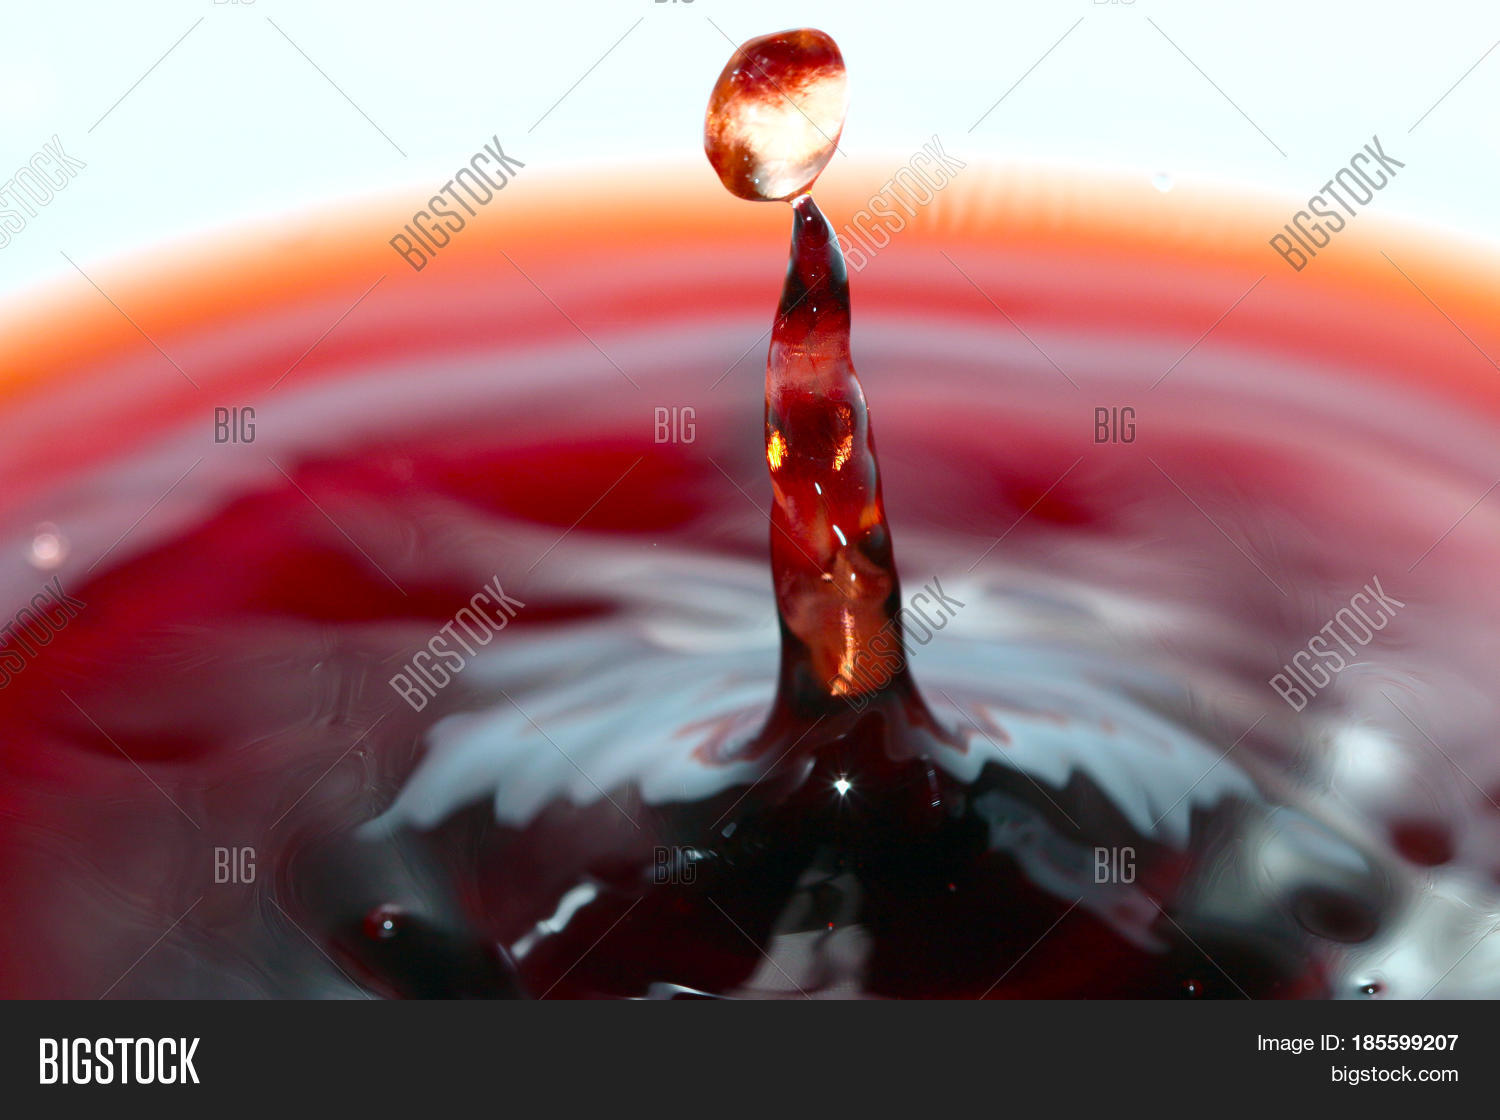 Heavy Red Wine : Heavy drops red wine patterns when image photo bigstock